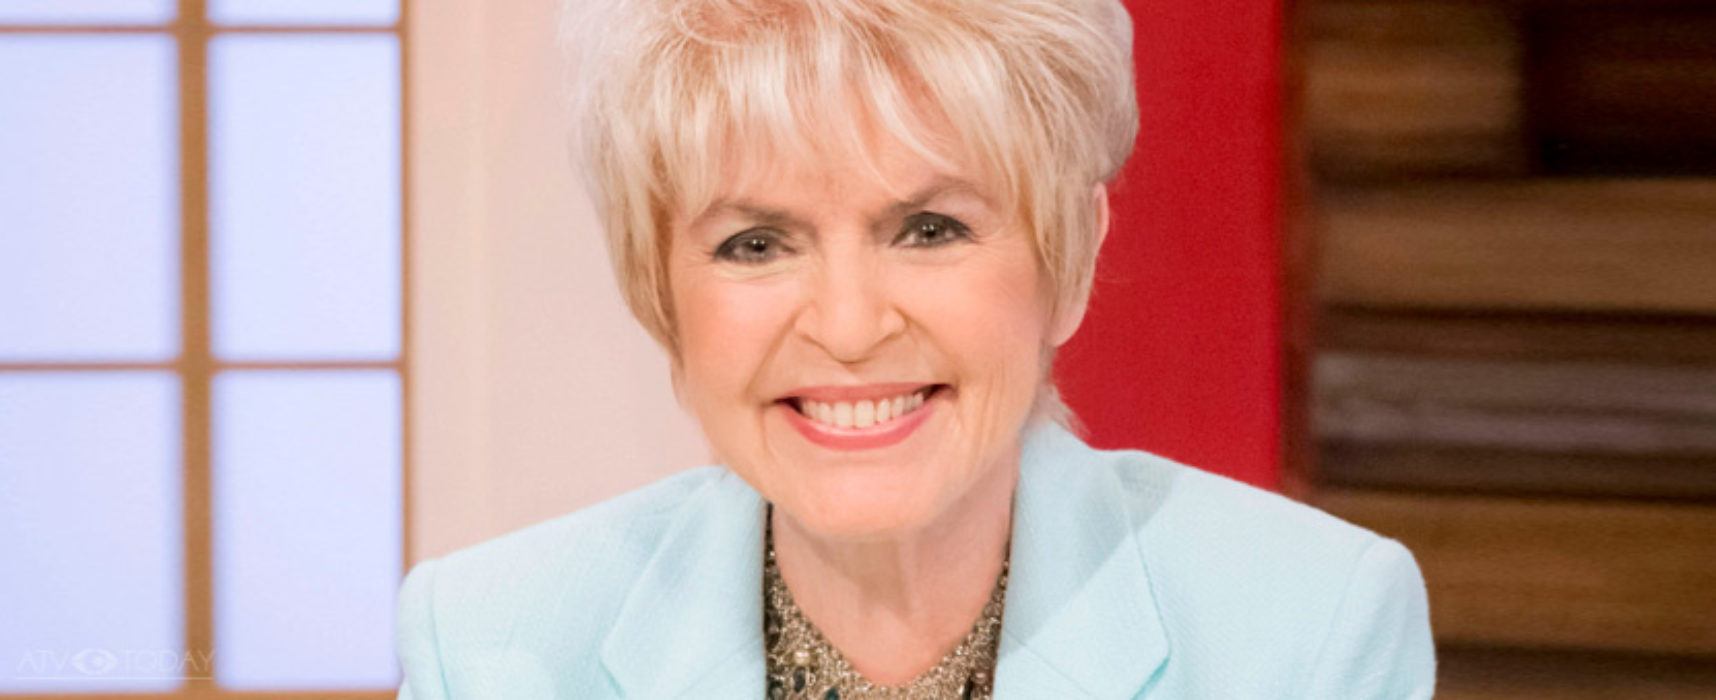 Gloria Hunniford says Cliff Richard 'elated' over historic sex abuse allegations being dropped